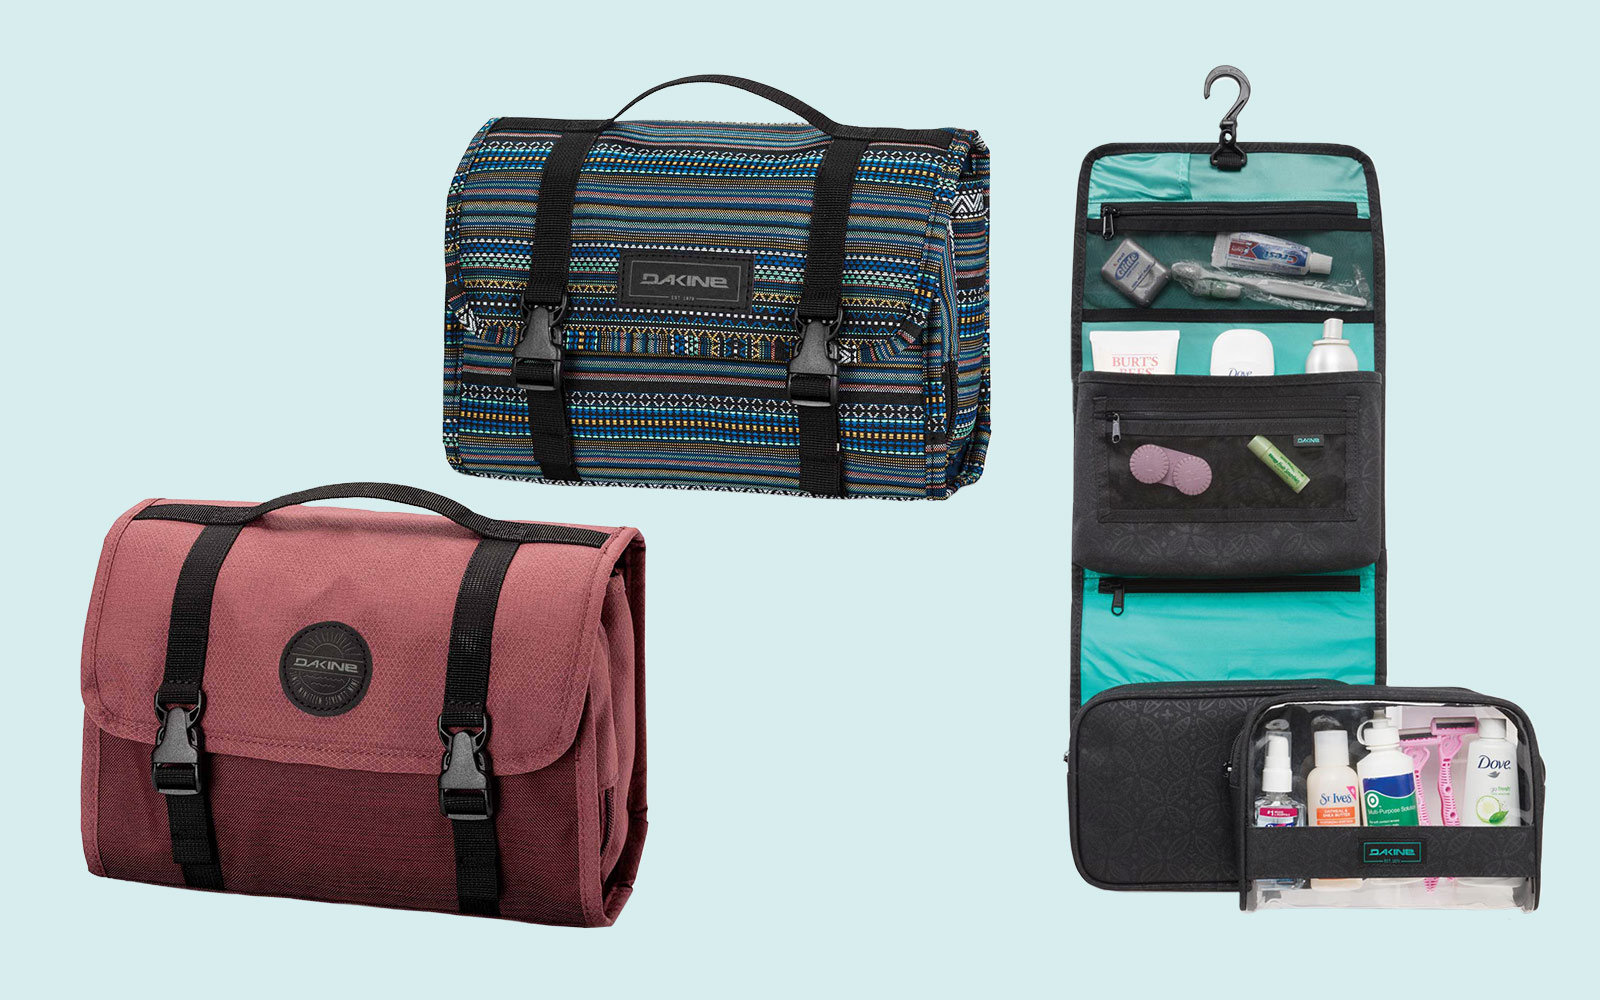 The Best Hanging Travel Organizer For Storing All Your Toiletries